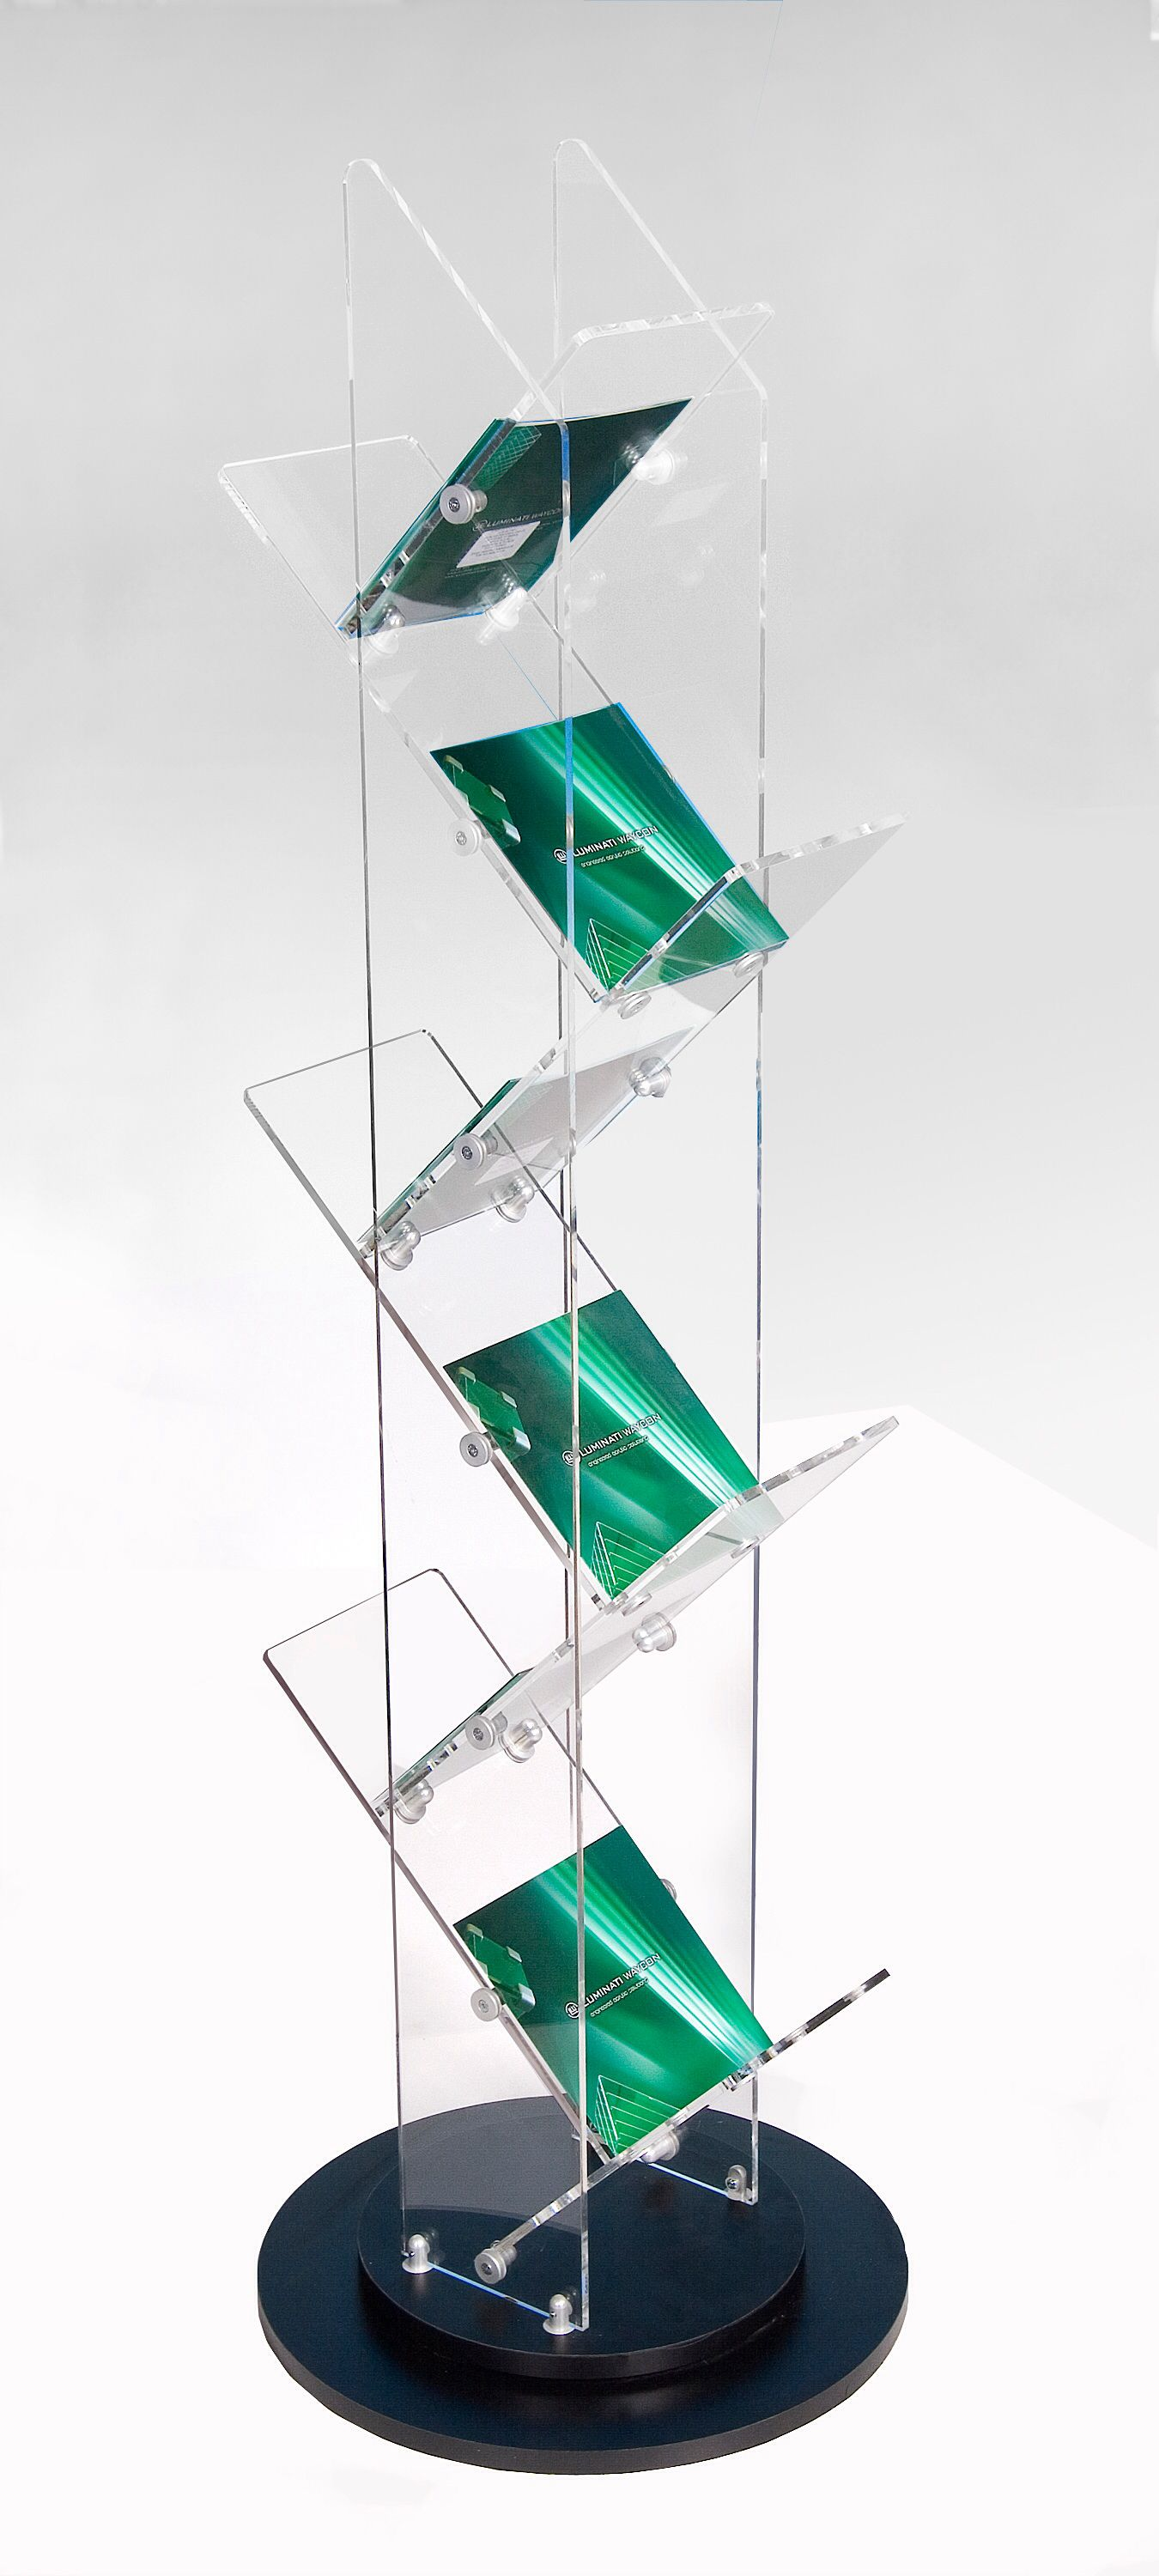 lhf wall mount x or holder multiple top pocket leaflet itm acrylic tier ad table pack rack organizer brochure clear of